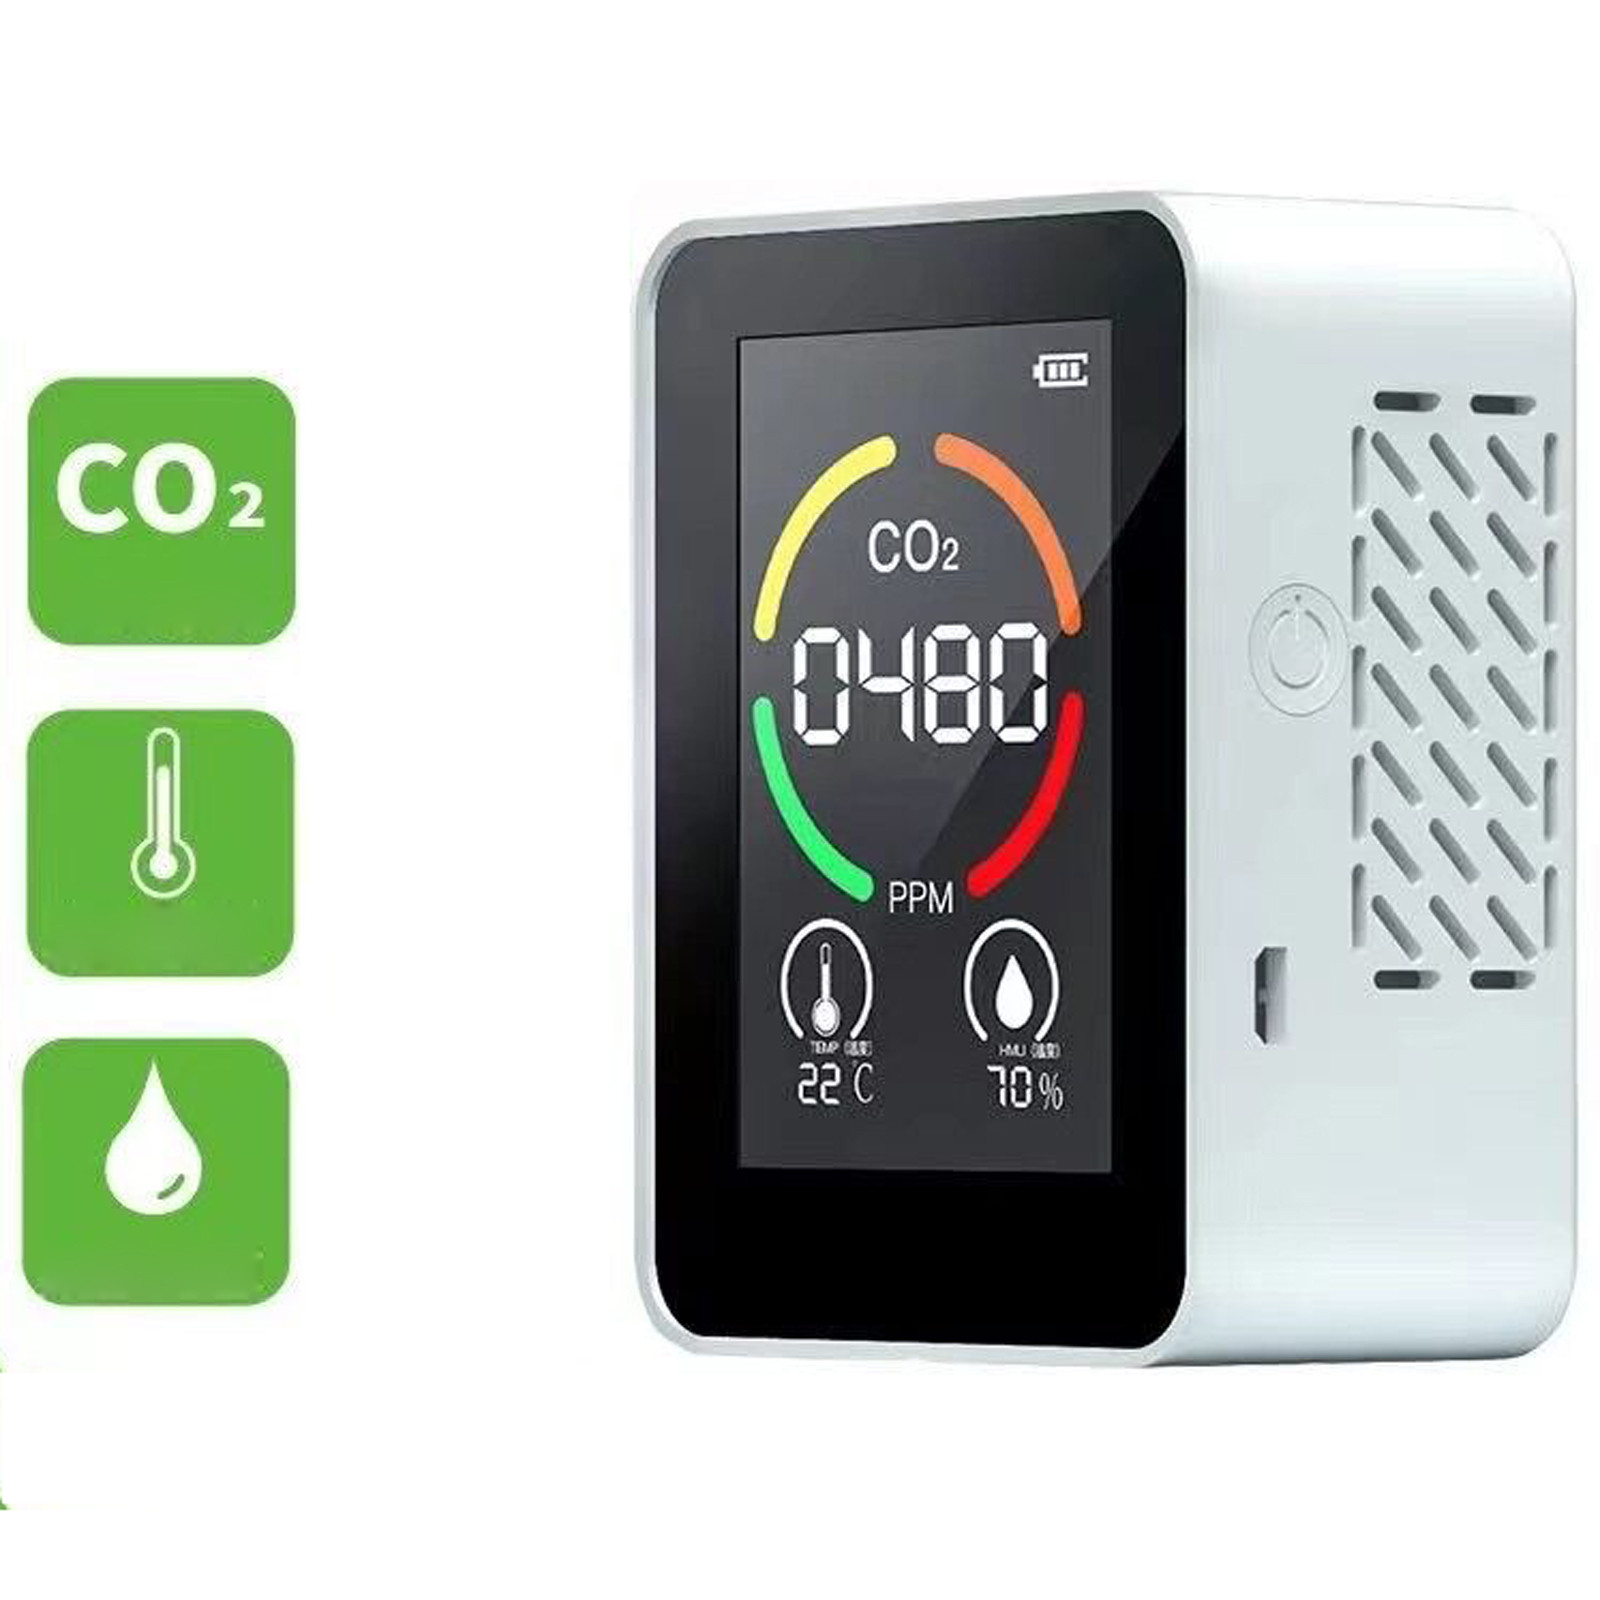 Usb Rechargeable Co2 Meter Air Quality Monitor Carbon Dioxide Sensor Tvoc Detector Concentration Temperature Humidity Testing